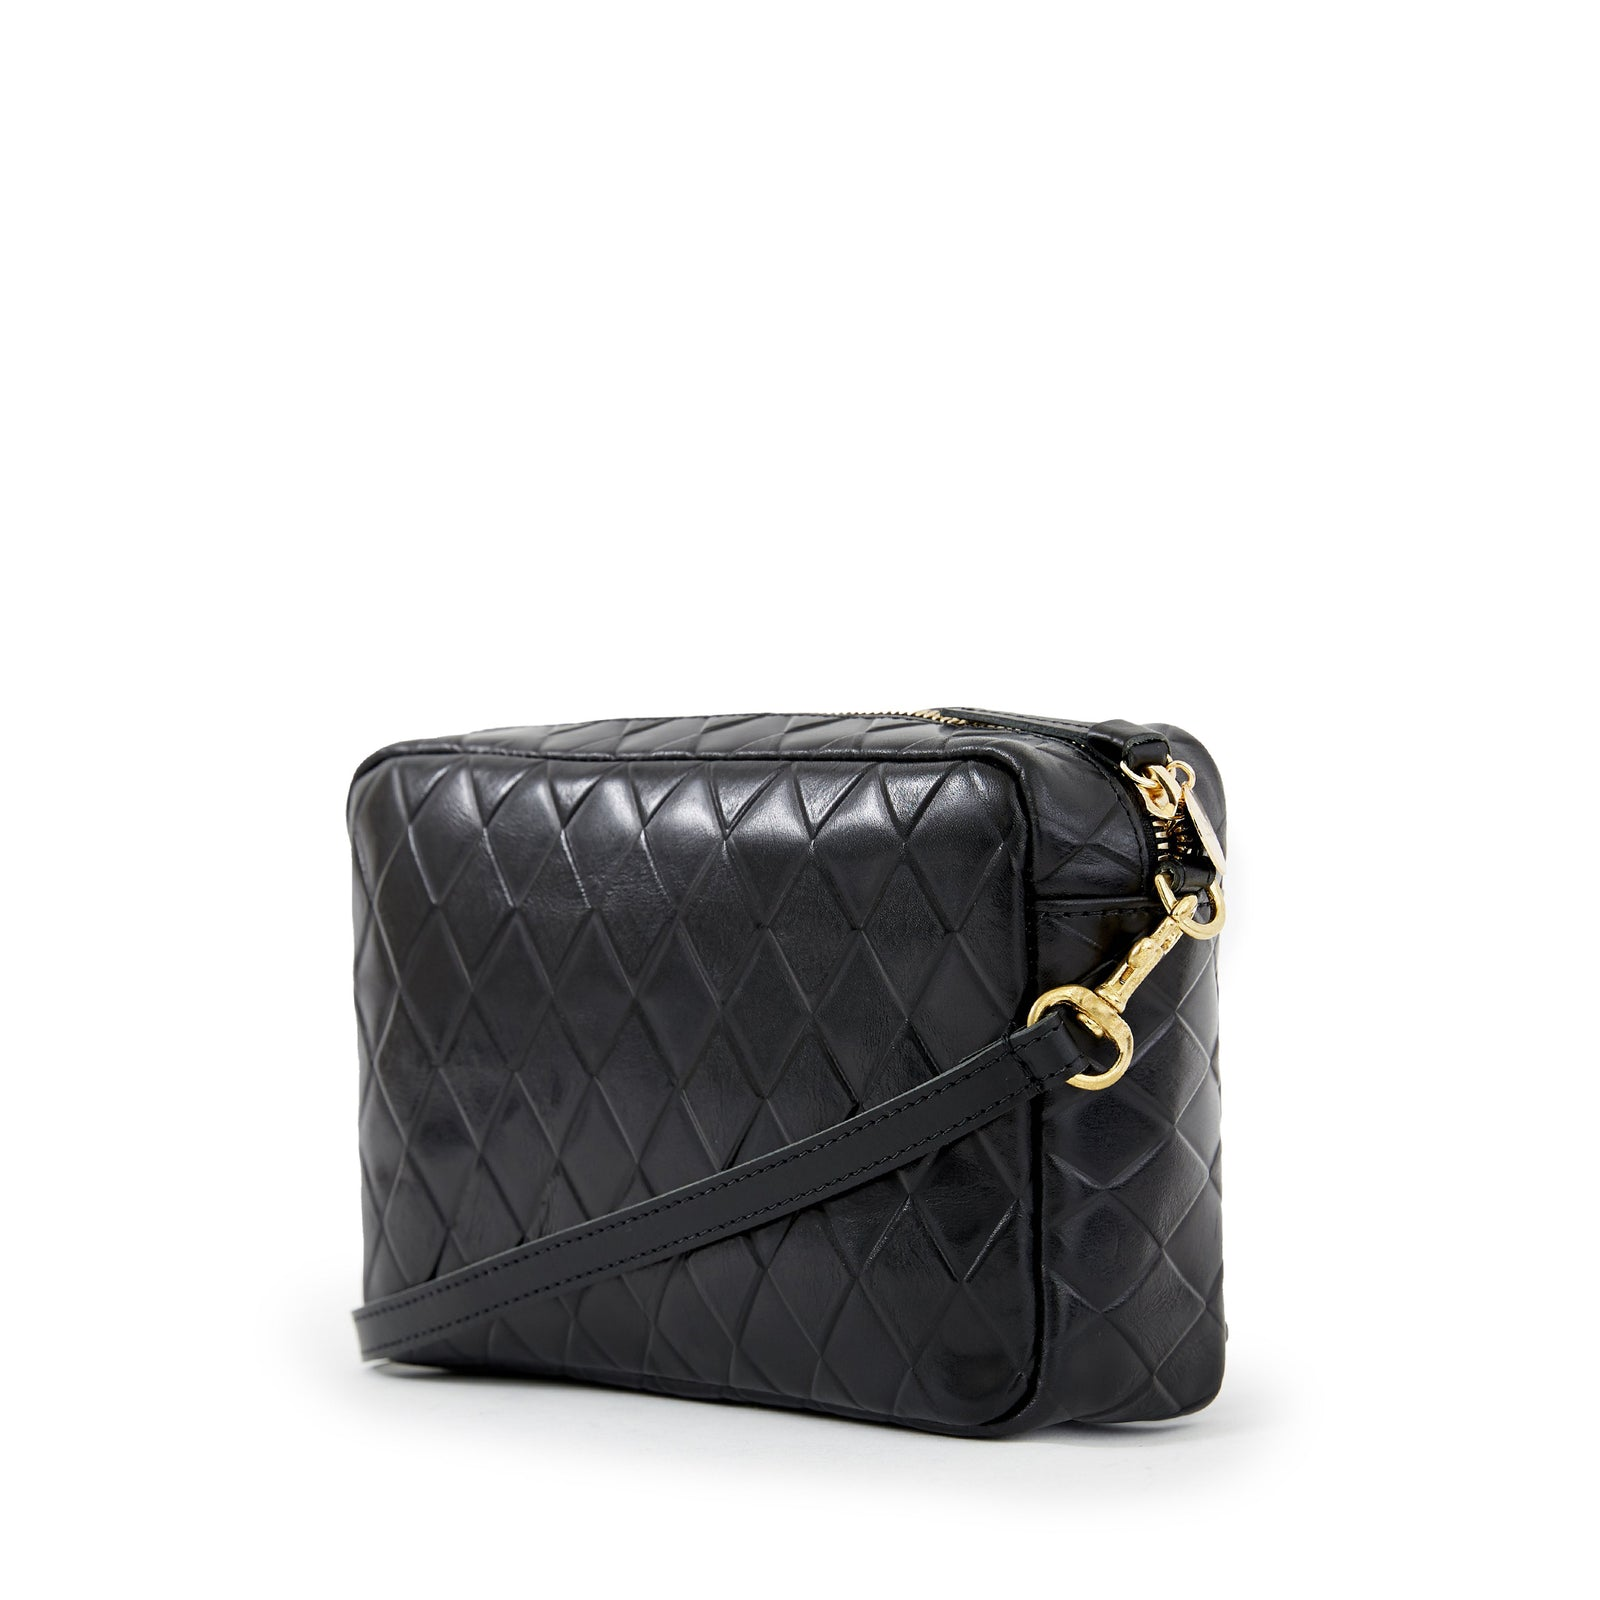 Black Diamond Midi Sac - Back